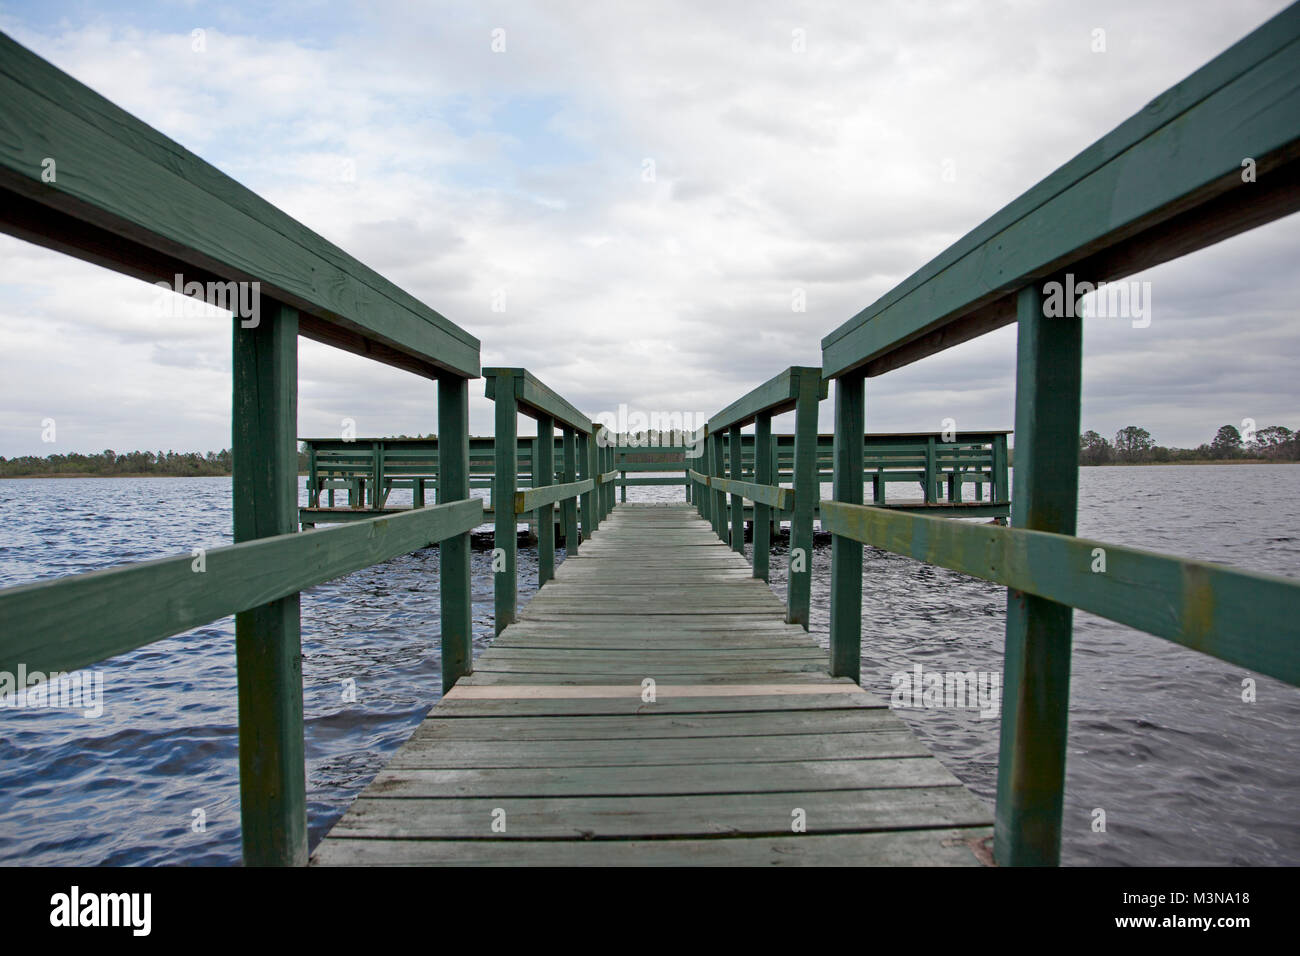 a beautiful Florida day with blue sky by a green wooden wharf at Old Lake Davenport, Florida - Stock Image